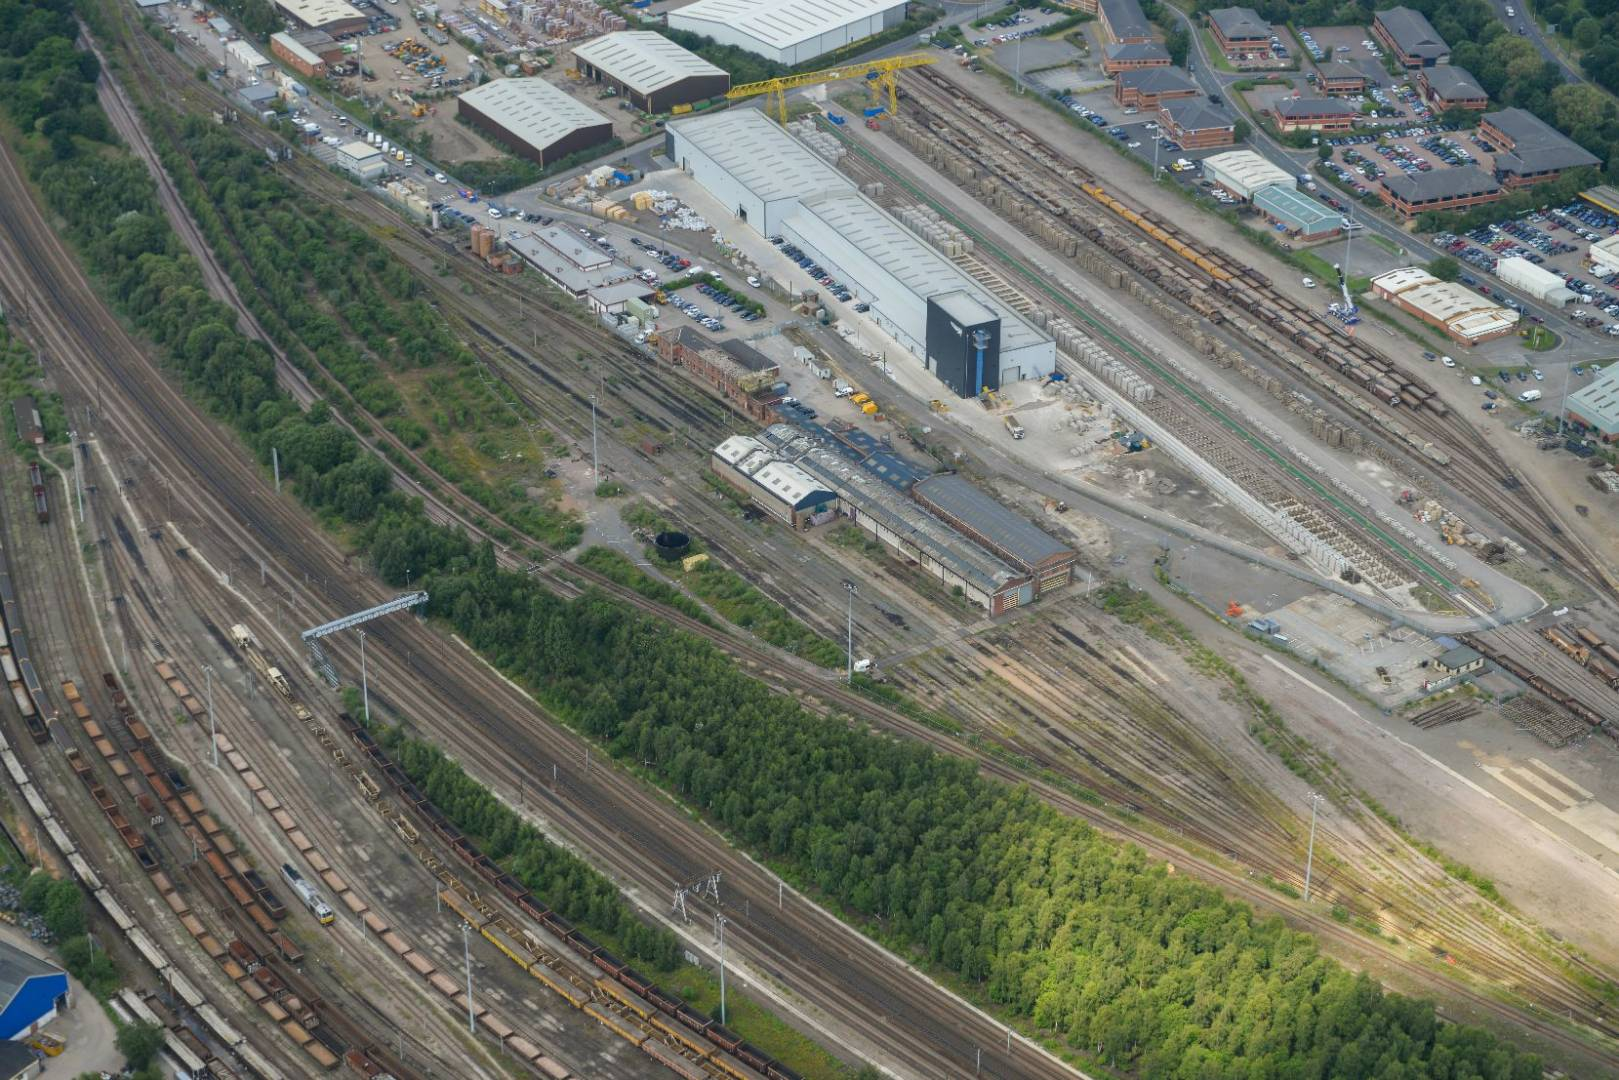 Hitachi's Super Express trains will ultimately be assembled at a new plant in Newton Aycliffe, Co Durham, and maintained at major centres at Doncaster Carr, Co Durham (pictured, under construction) and Stoke